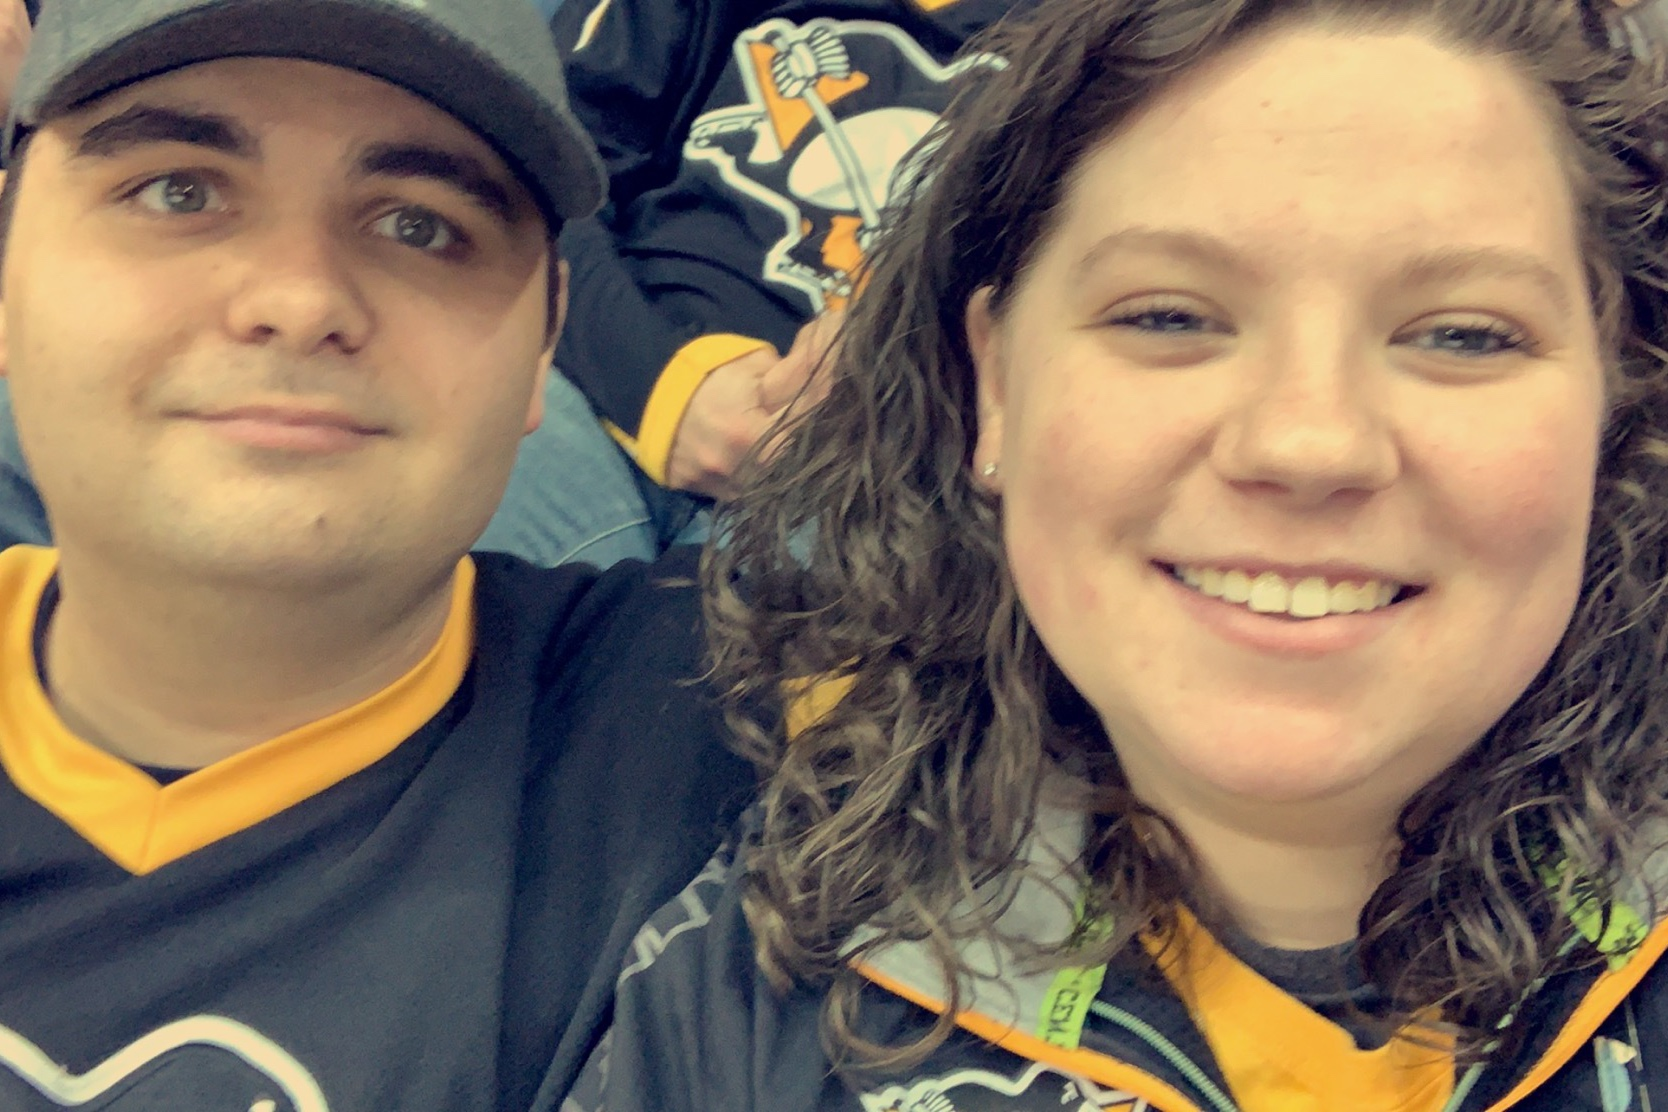 Sarah+and+boyfriend+at+Penguins+game+.jpg